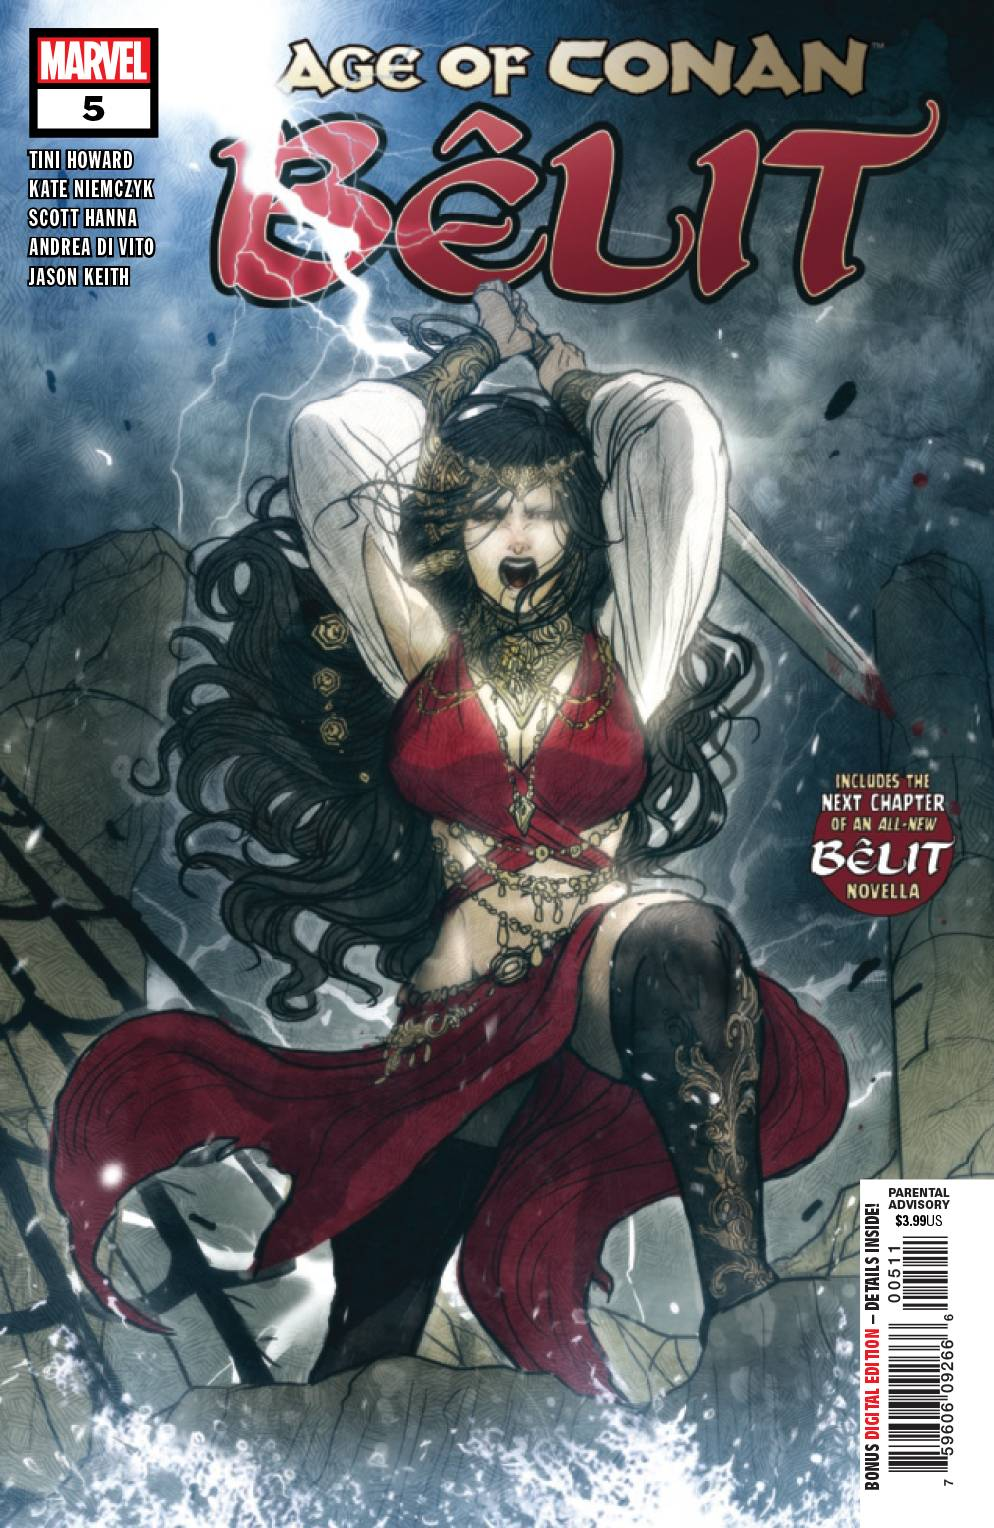 07/24/2019 AGE OF CONAN BELIT #5 (OF 5)